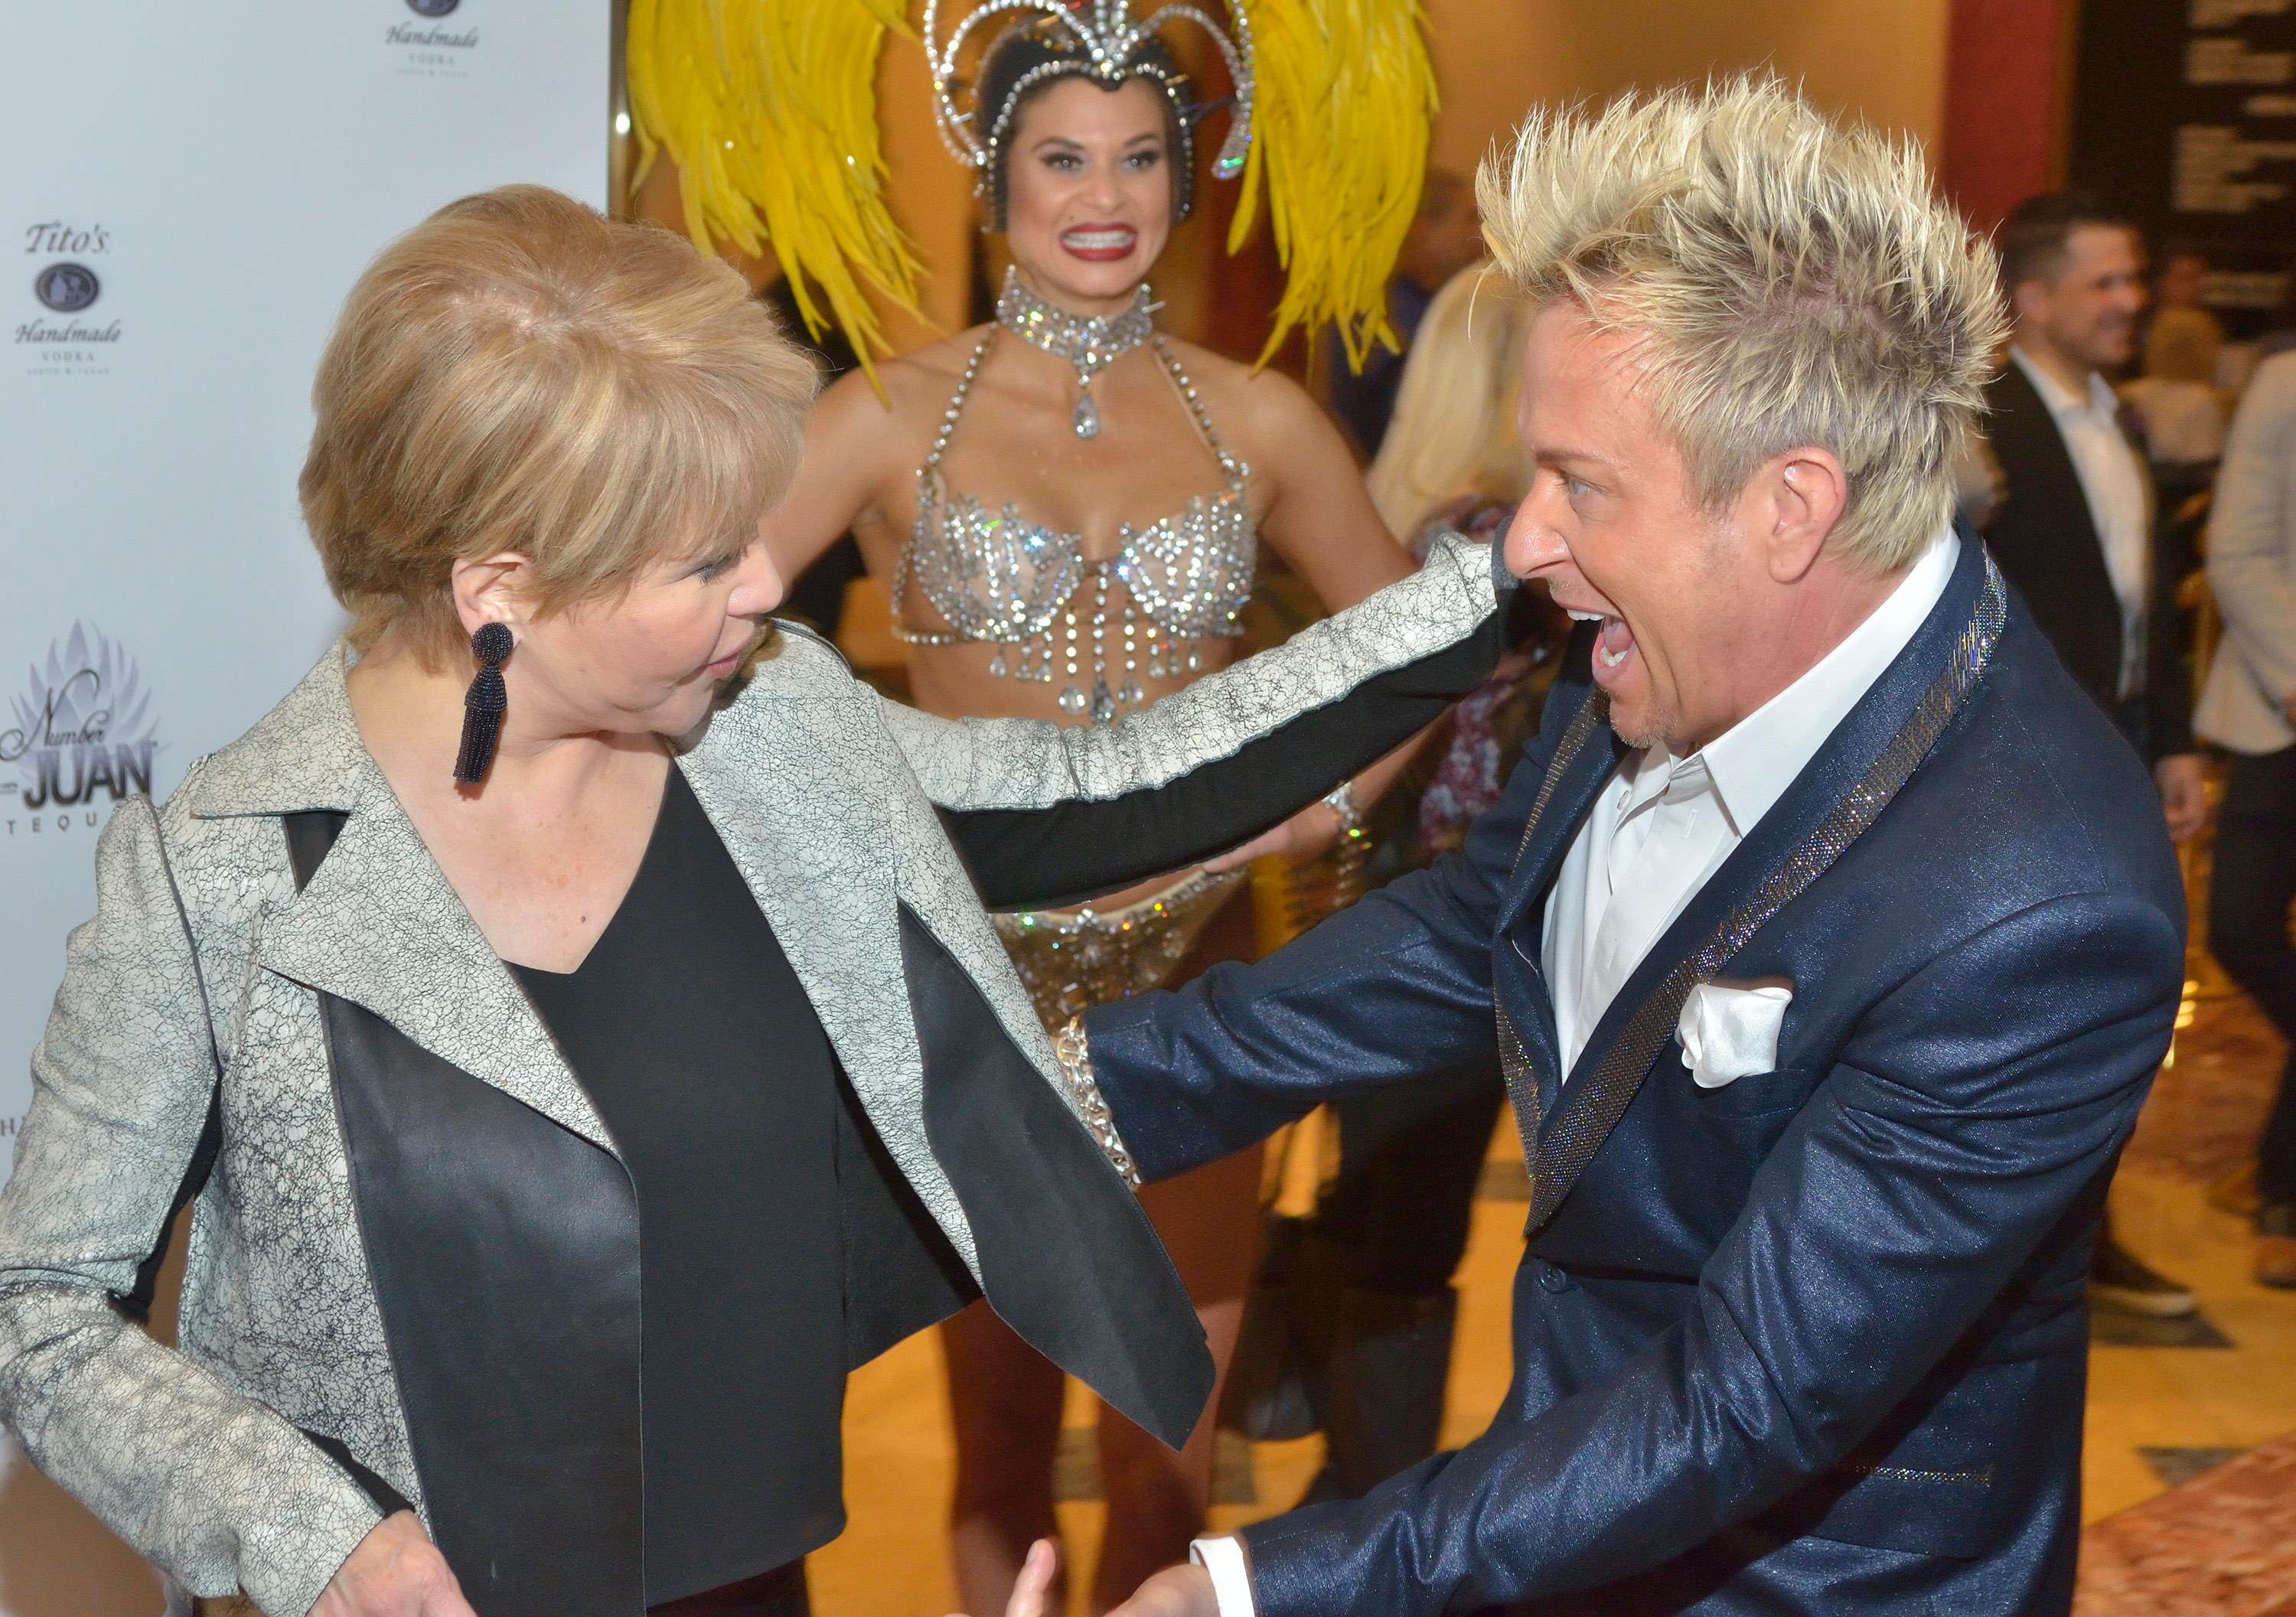 "Pia Zadora, left, and Chris Phillips of Zowie Bowie greet each other at the ""Vegas Cares"" benefit concert at the Venetian Theatre in the Venetian hotel-casino at 3355 S. Las Vegas Blvd in Las Vegas on Sunday, Nov 5, 2017. The concert was sponsored by a group of Las Vegas entertainers, producers and business professionals to honor the victims and first responders from shooting at the Route 91 Harvest festival. (Photo/Las Vegas News Bureau/Bill Hughes)"